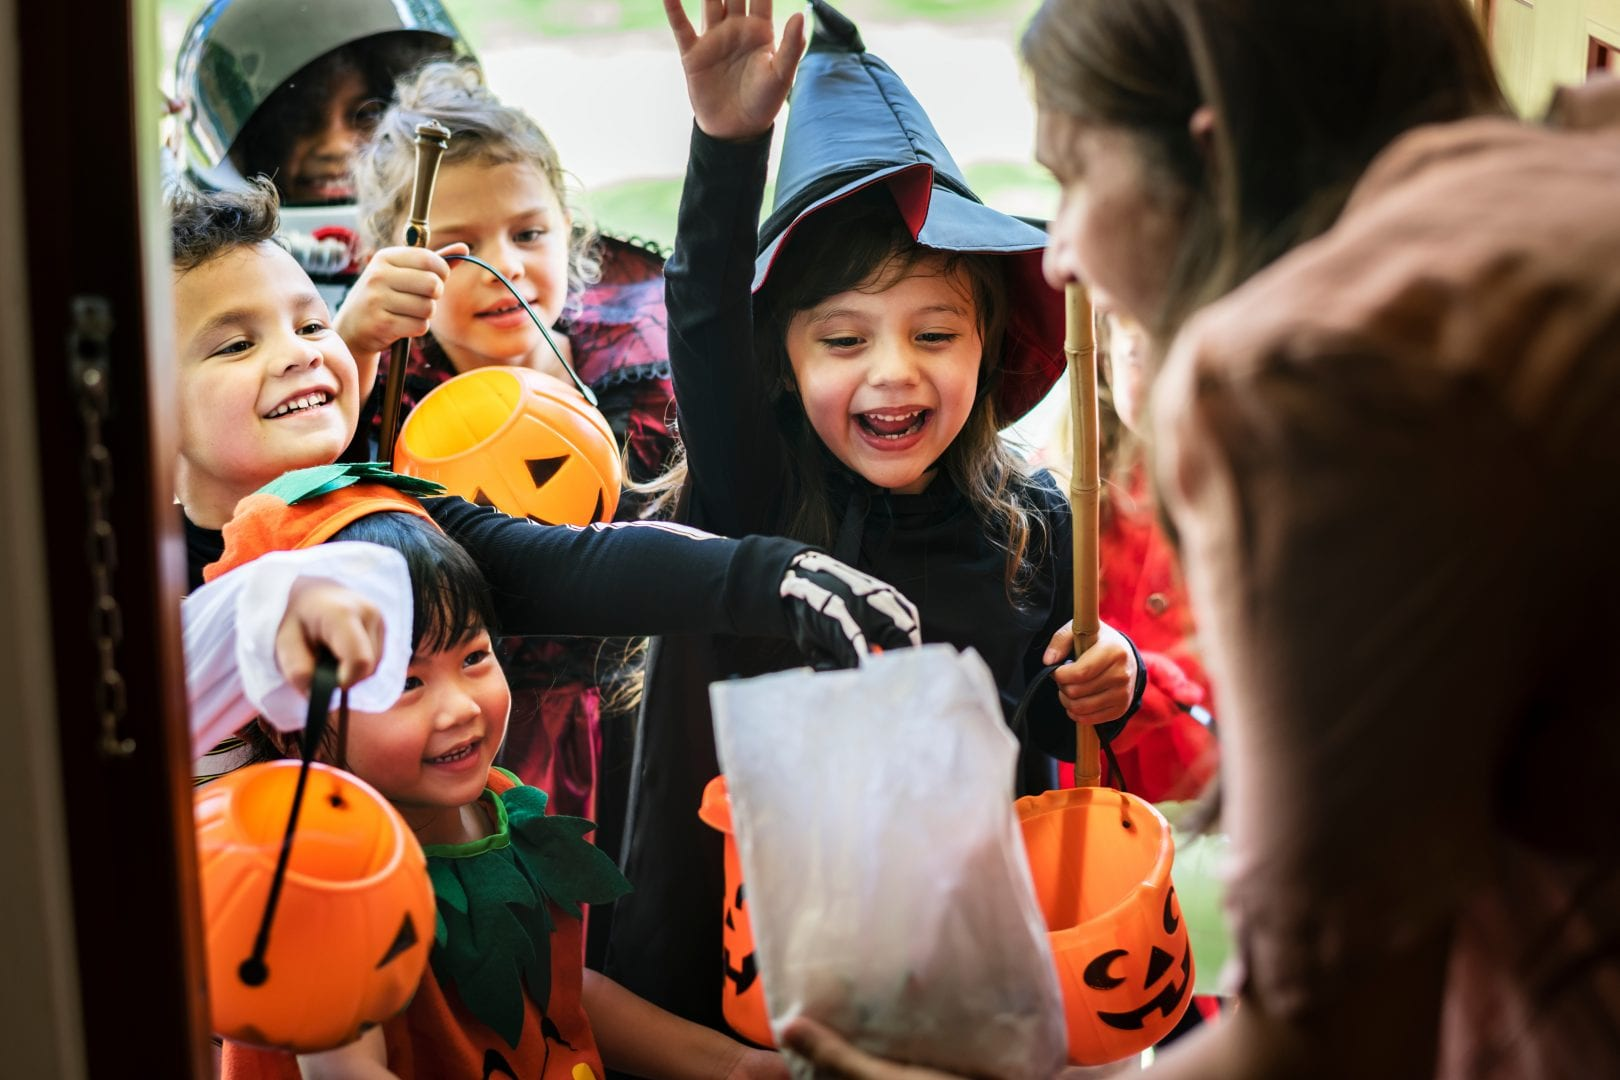 a group of kids in costume holding orange pumpkins. Theyre smiling and laughing as they trick or treat at a woman's front door.